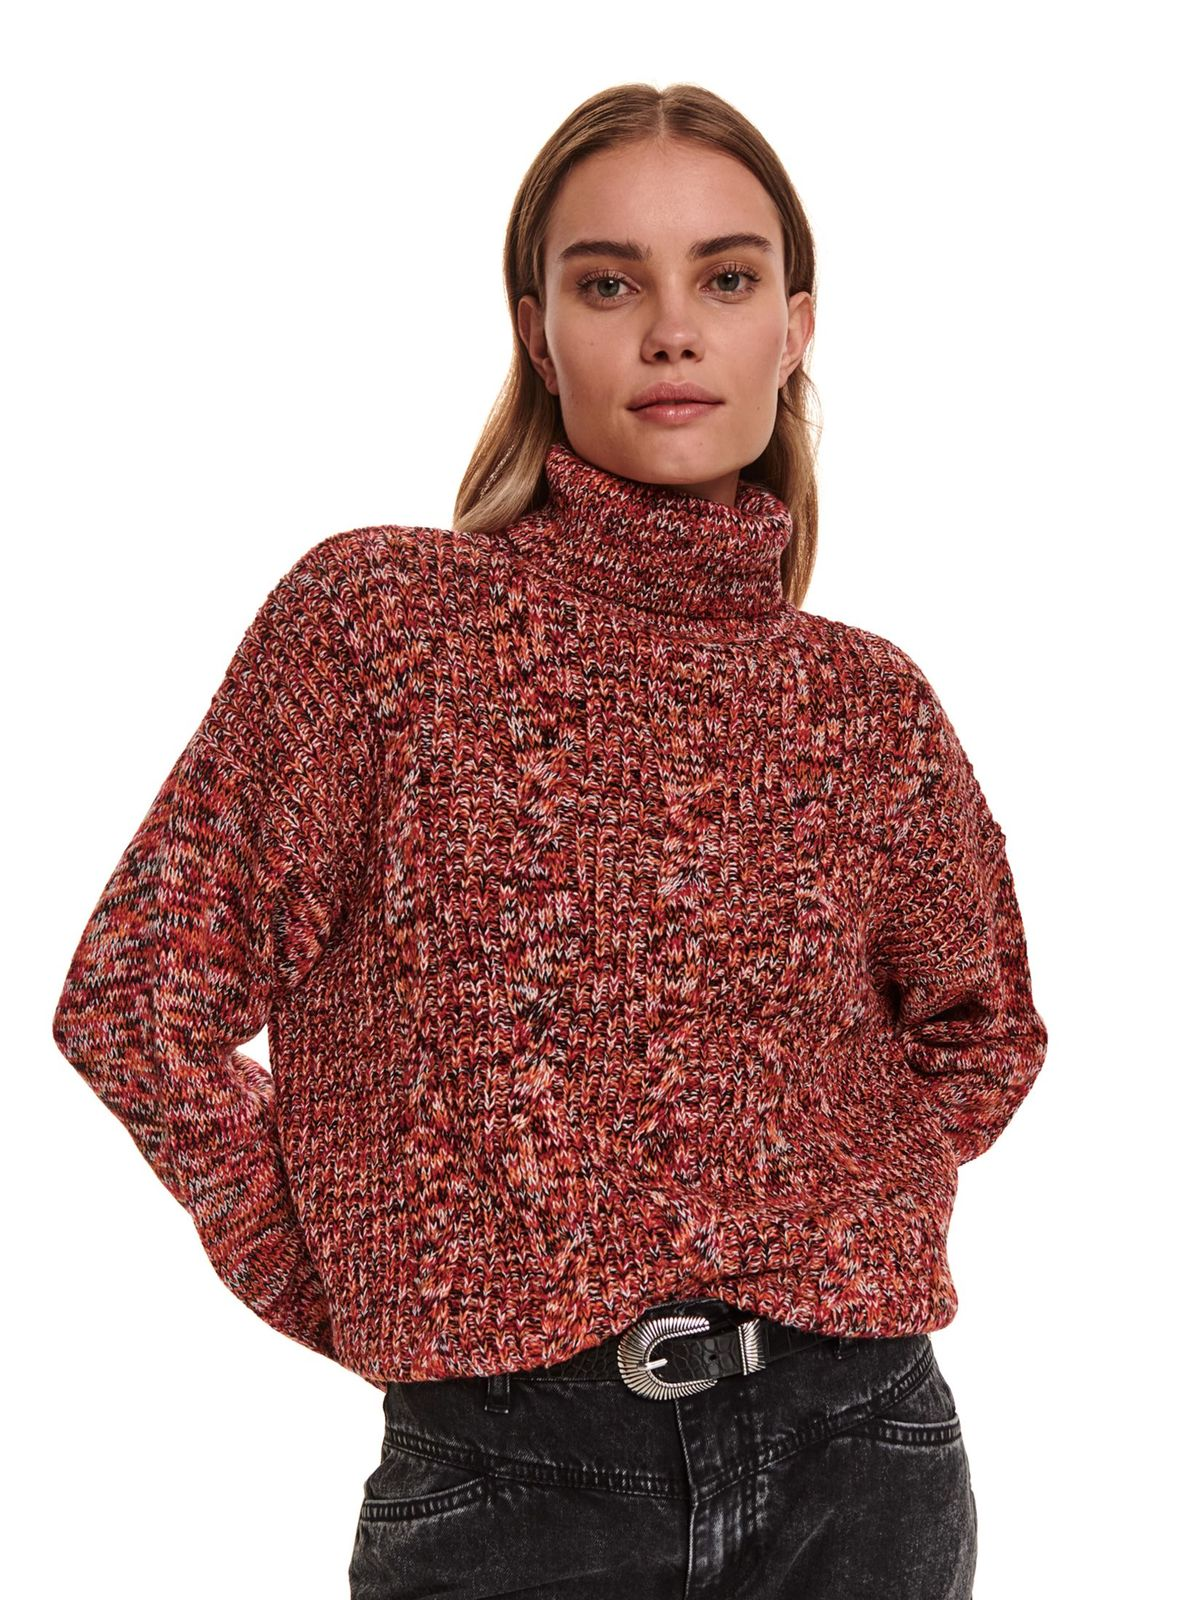 Pink sweater casual knitted flared turtleneck